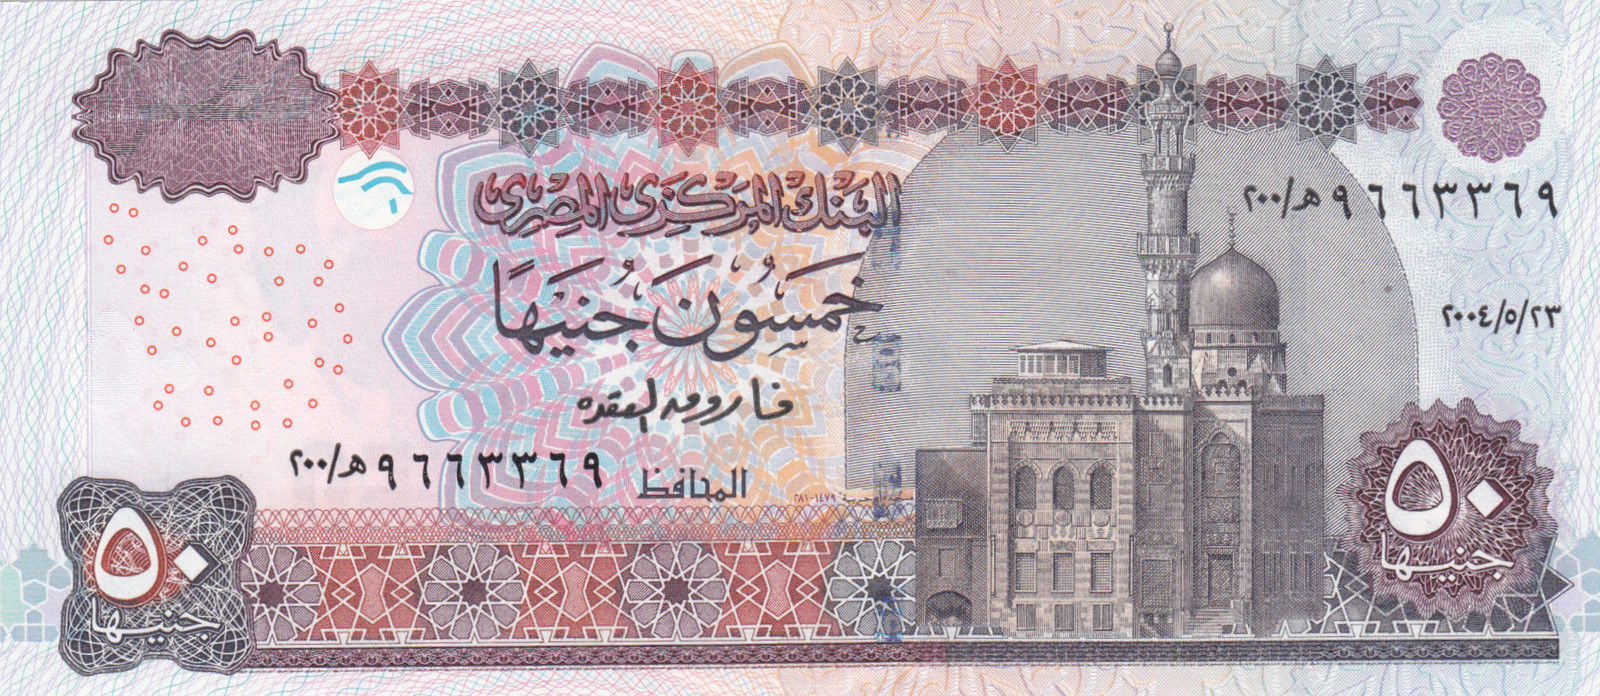 egypt 50 pounds banknote 2012world banknotes amp coins